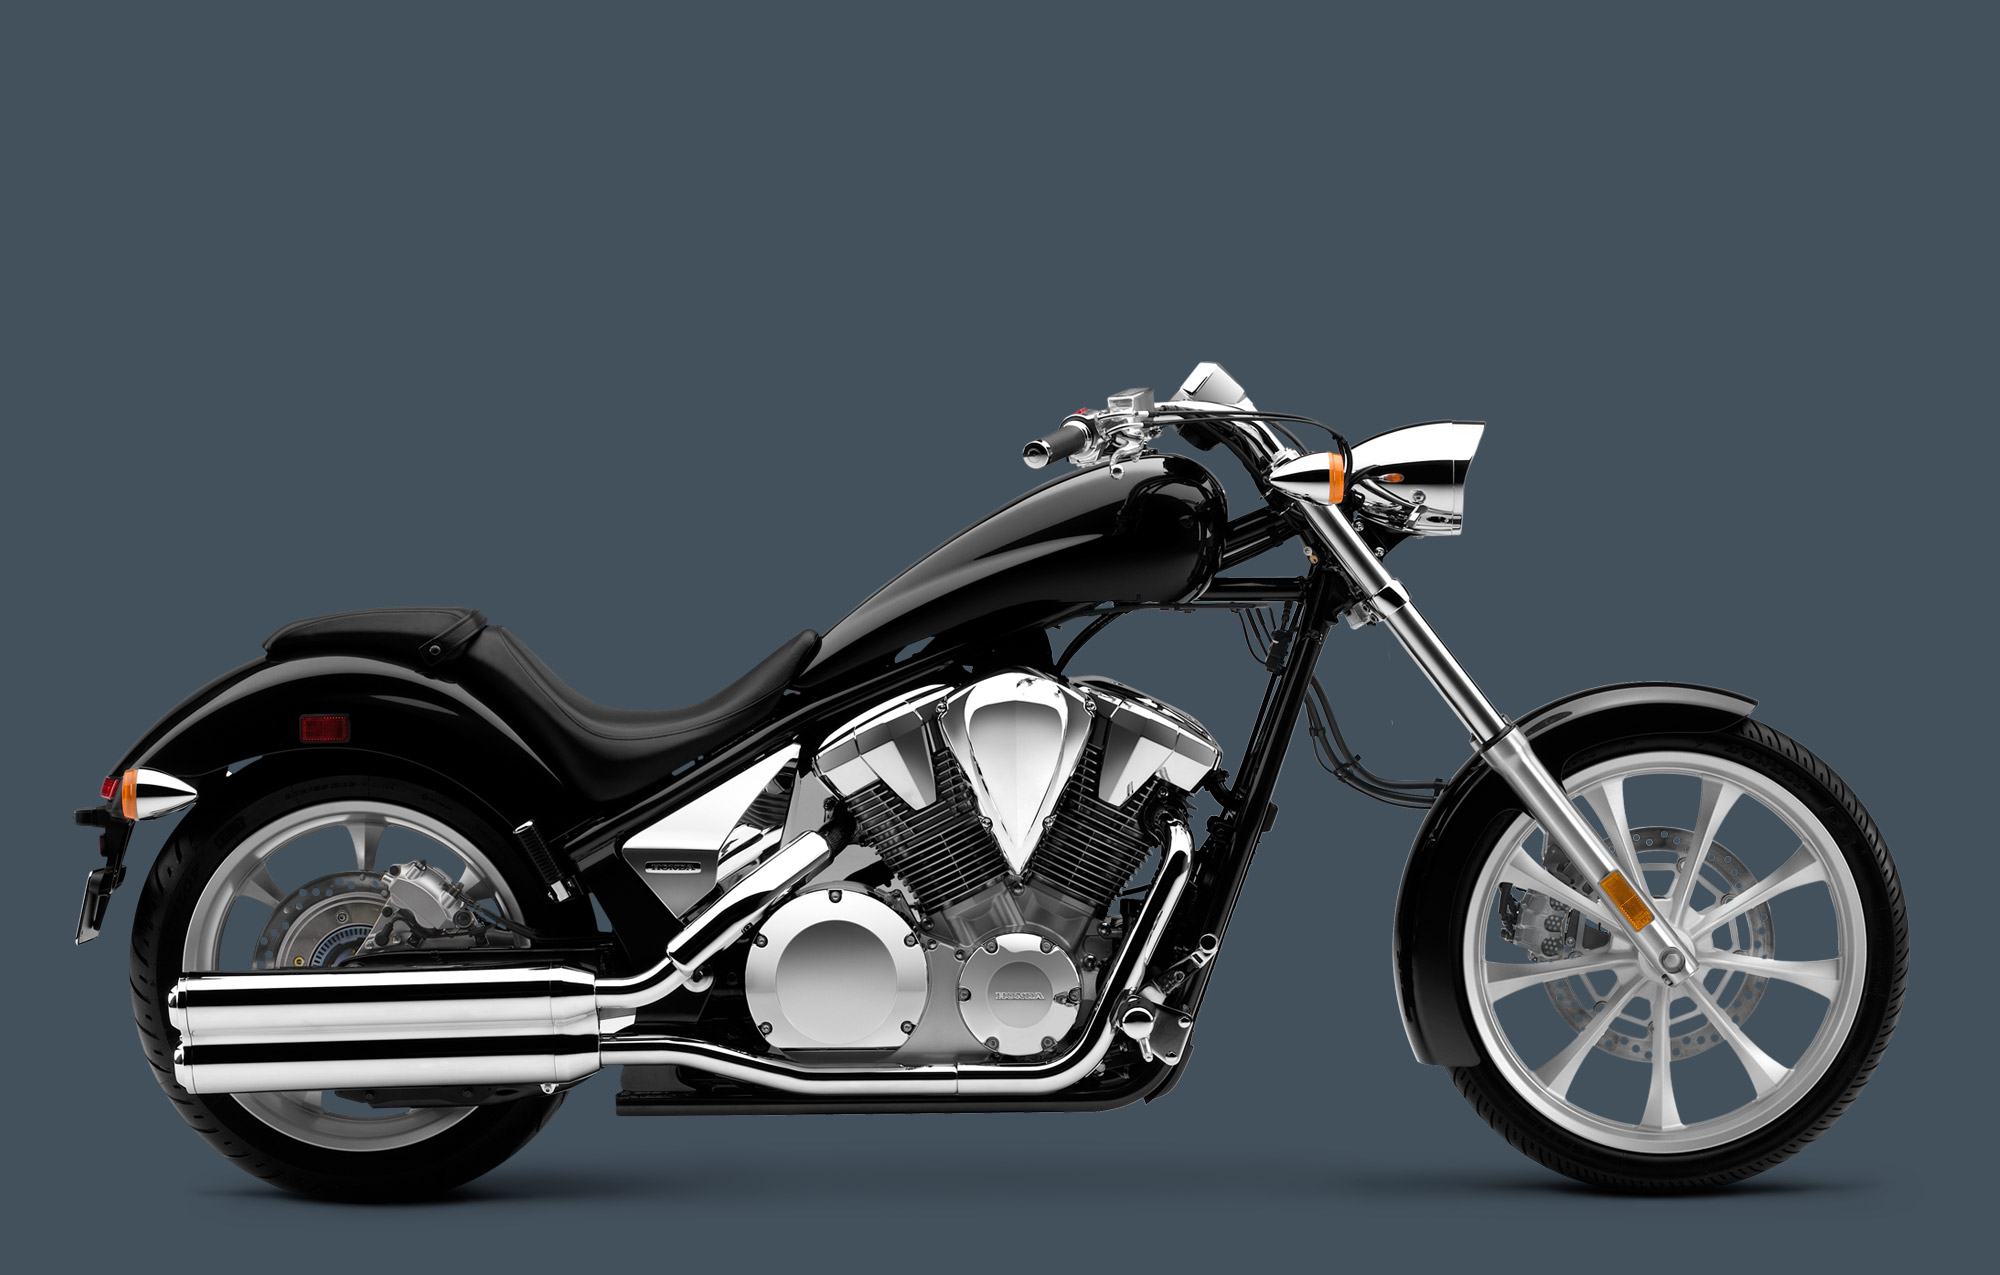 Honda Fury ABS 2015 images #83348